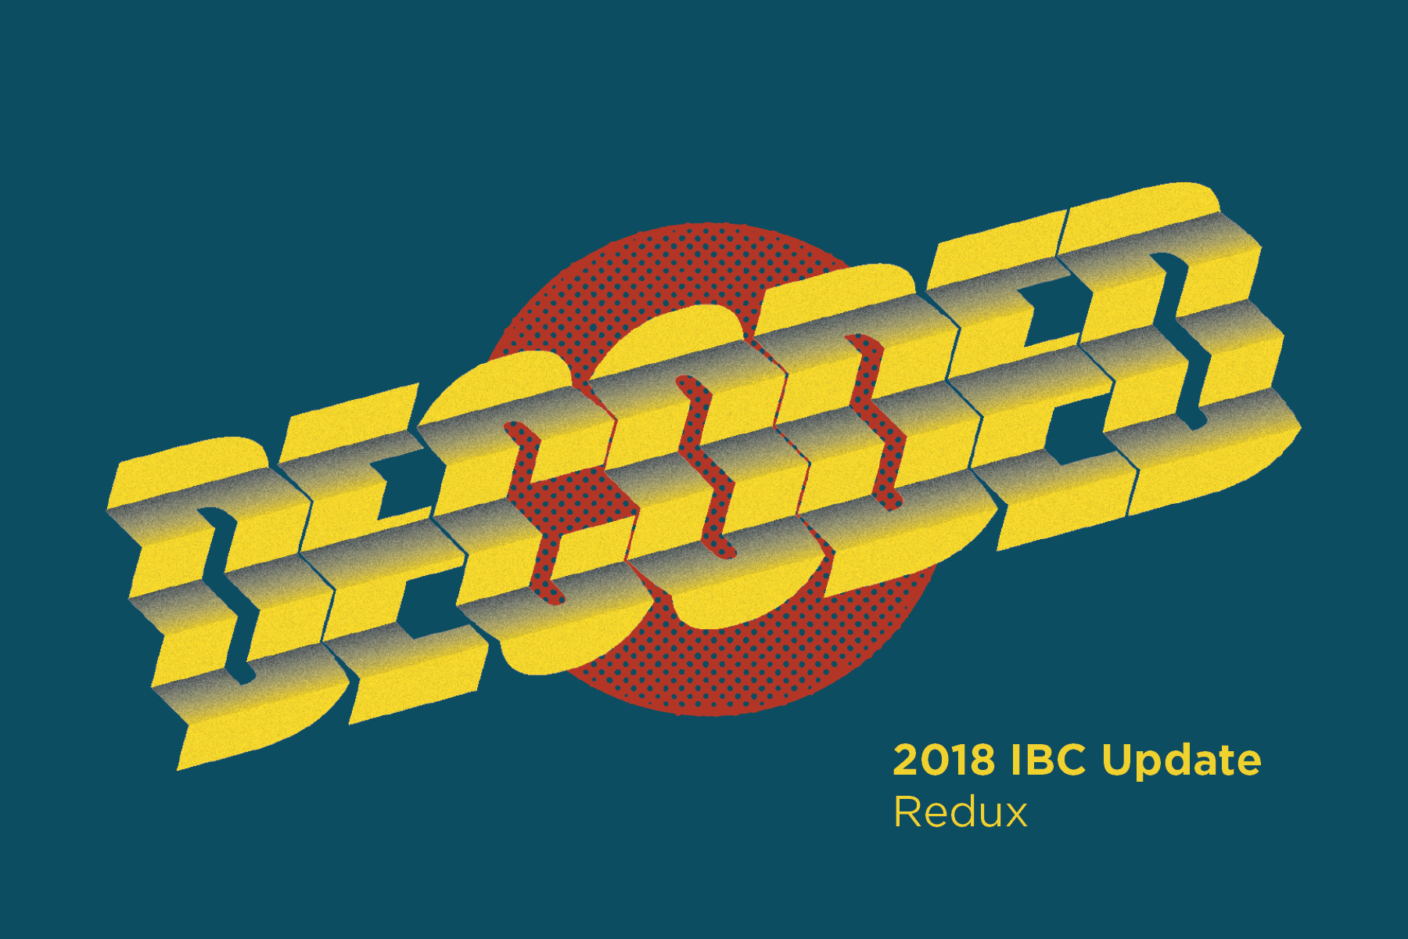 This page is intended only for participants of Decoded | 2018 IBC Update Redux.